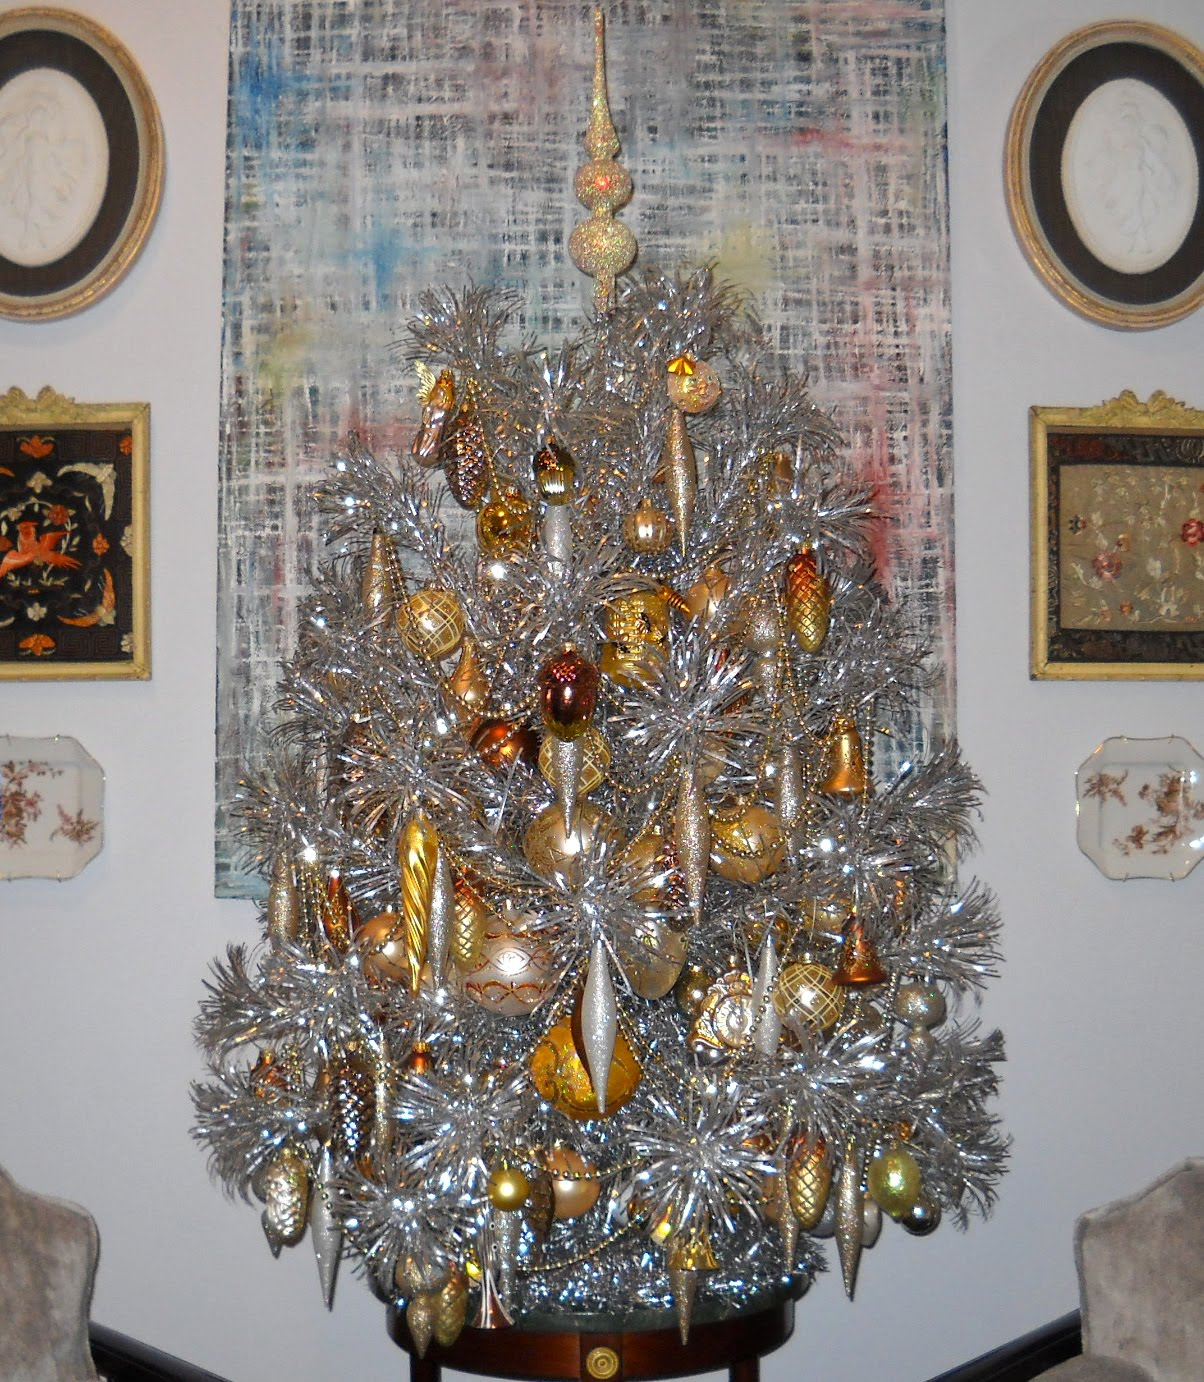 Knickerbocker Style & Design: Trimming the Tinsel Tree